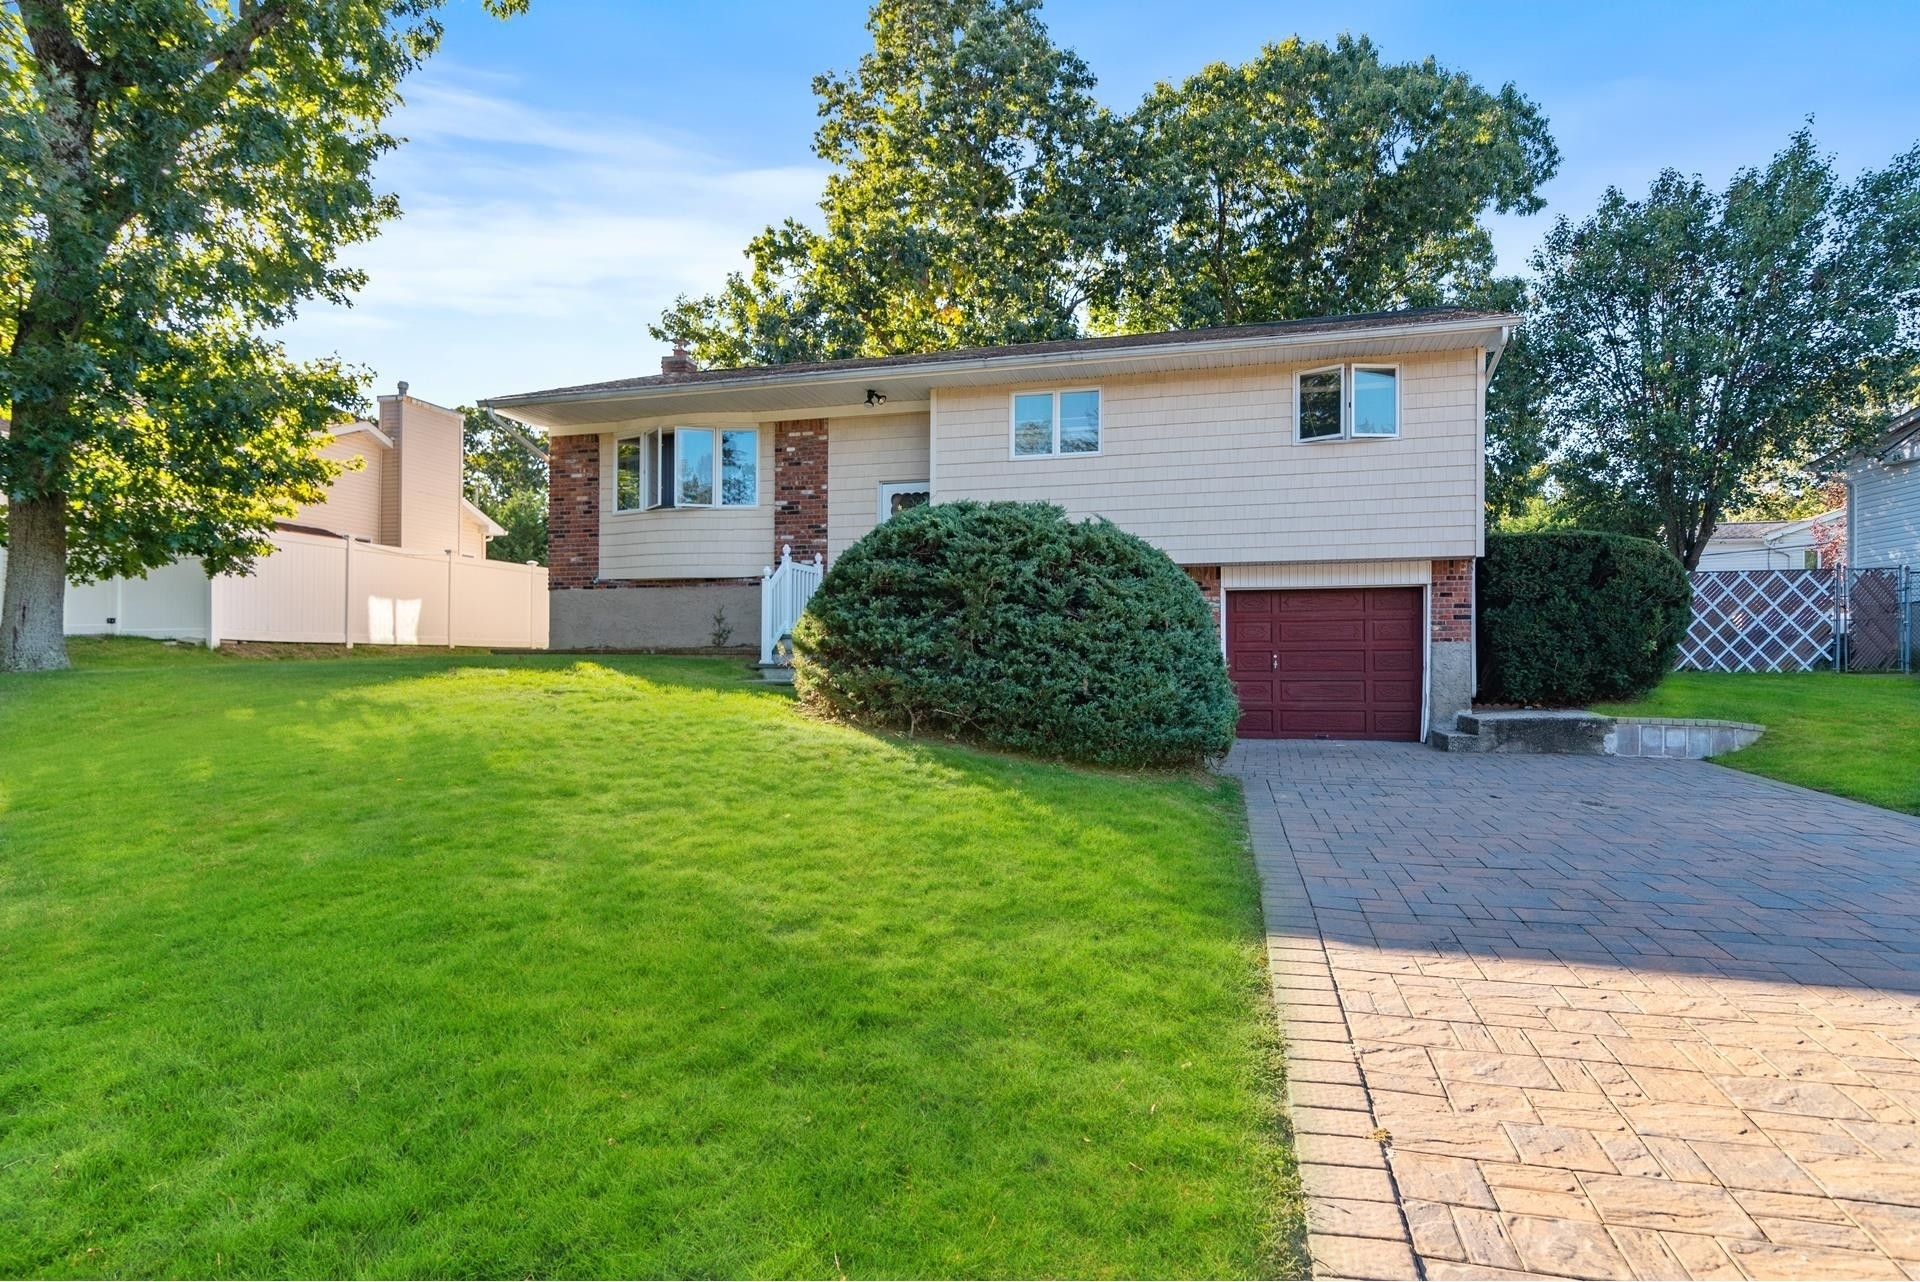 19. Single Family Homes for Sale at Smithtown, NY 11787